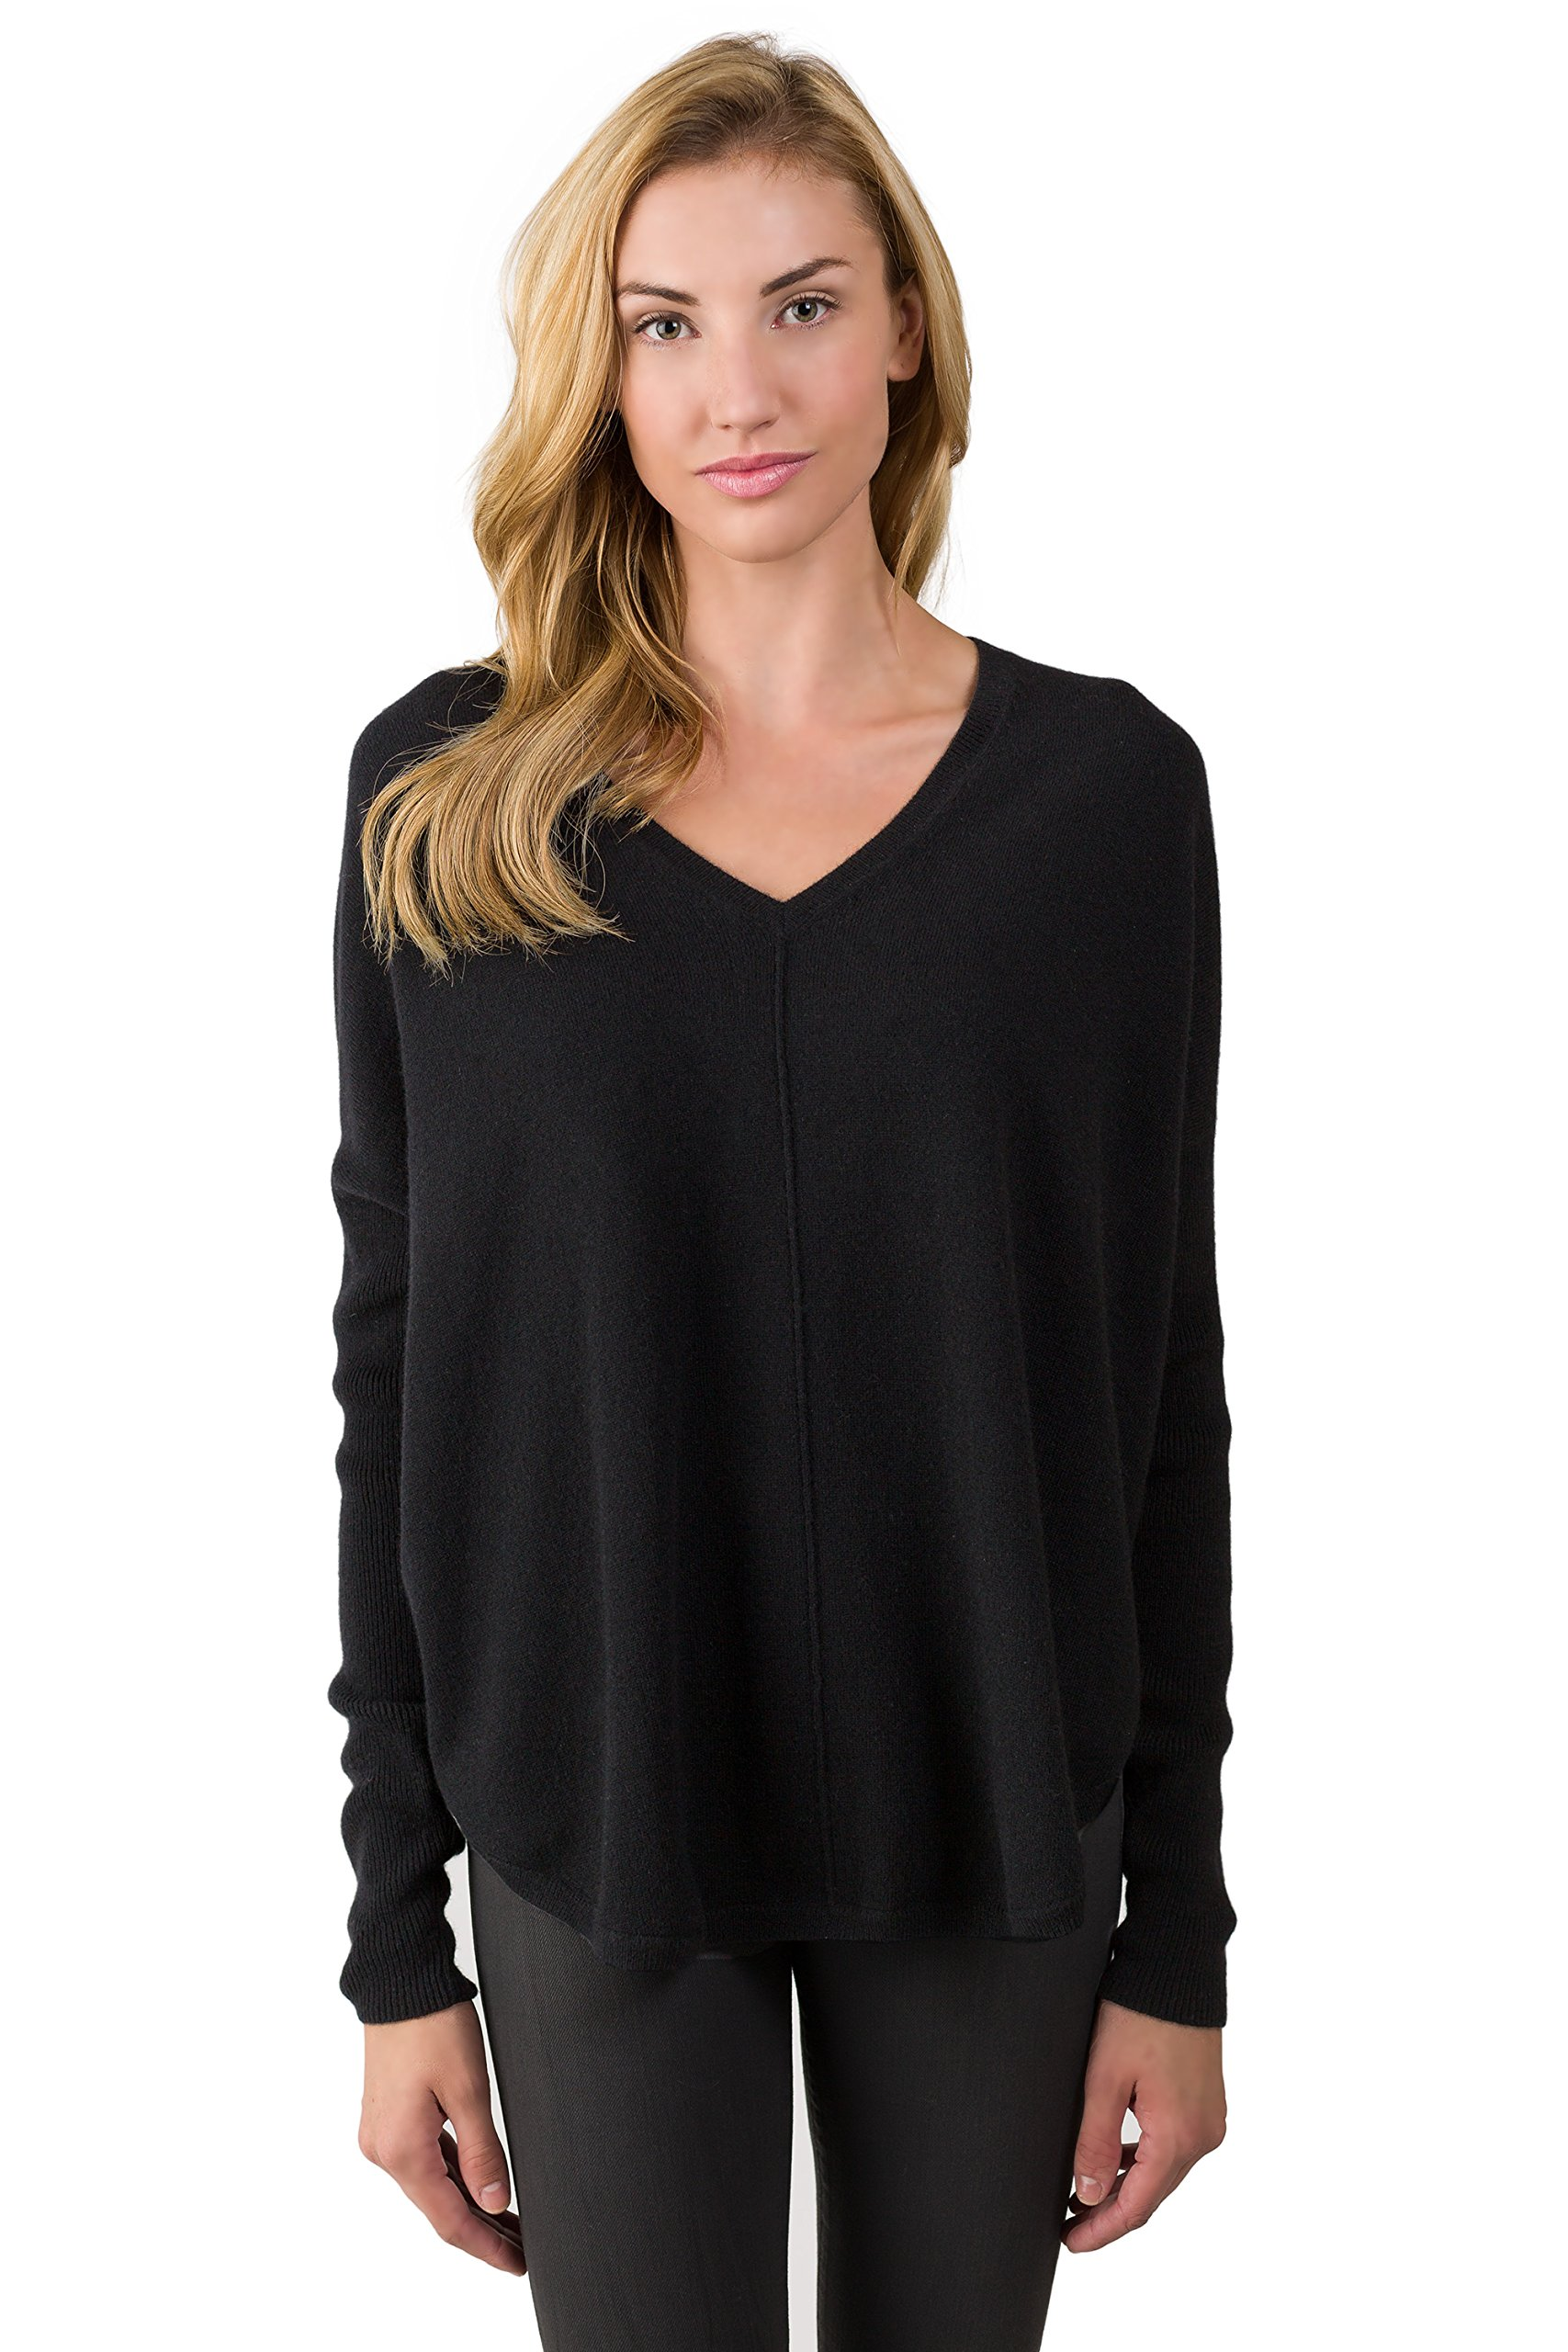 J CASHMERE Women's 100% Cashmere Long Sleeve Oversize V-neck Pullover Circle High Low Sweater Black Medium by JENNIE LIU